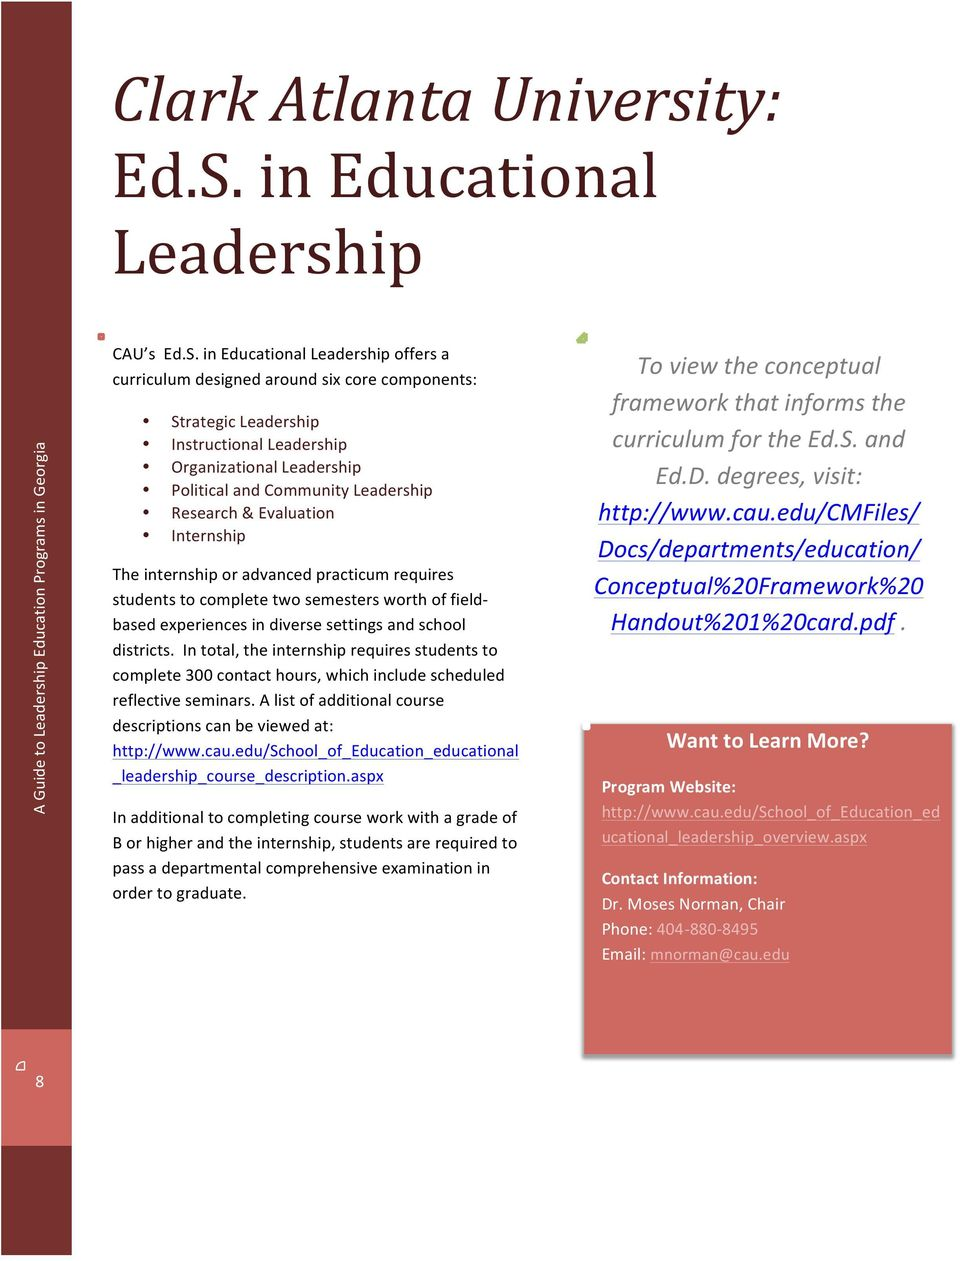 in Educational Leadership offers a curriculum designed around six core components: Strategic Leadership Instructional Leadership Organizational Leadership Political and Community Leadership Research